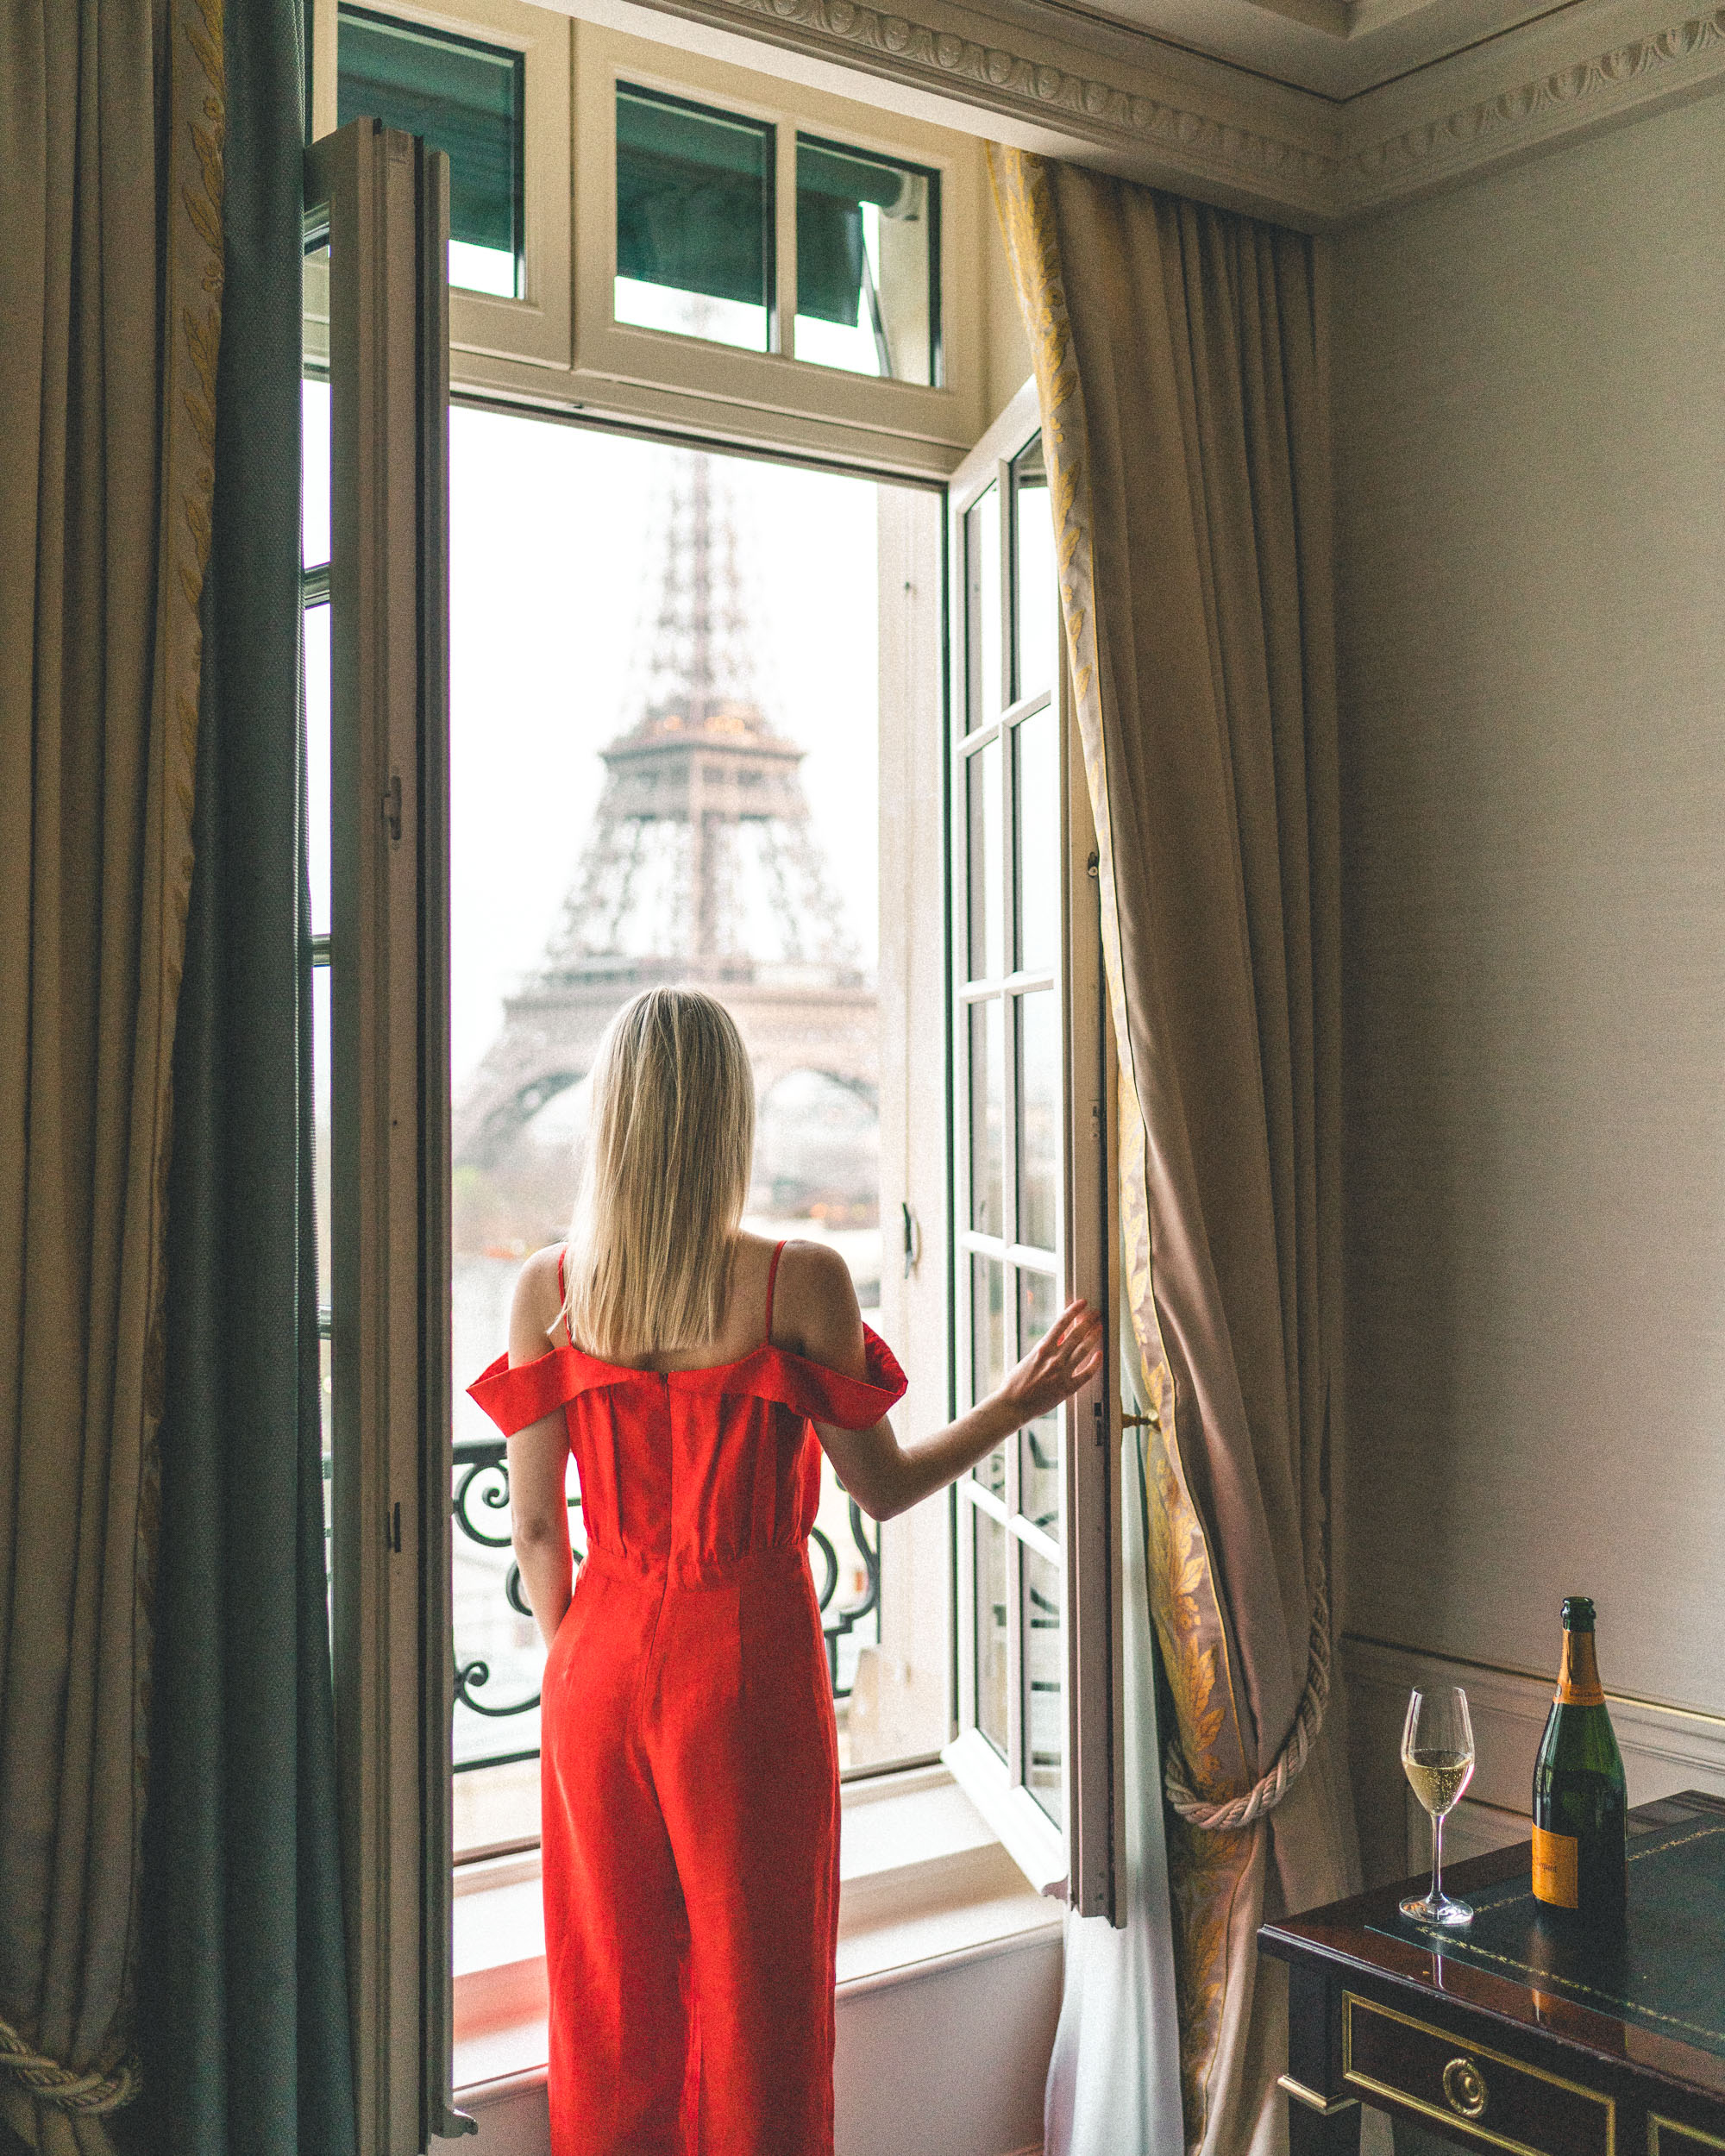 Best views of the Eiffel Tower from the Shangri La Paris Hotel - Complete Paris Travel Guide